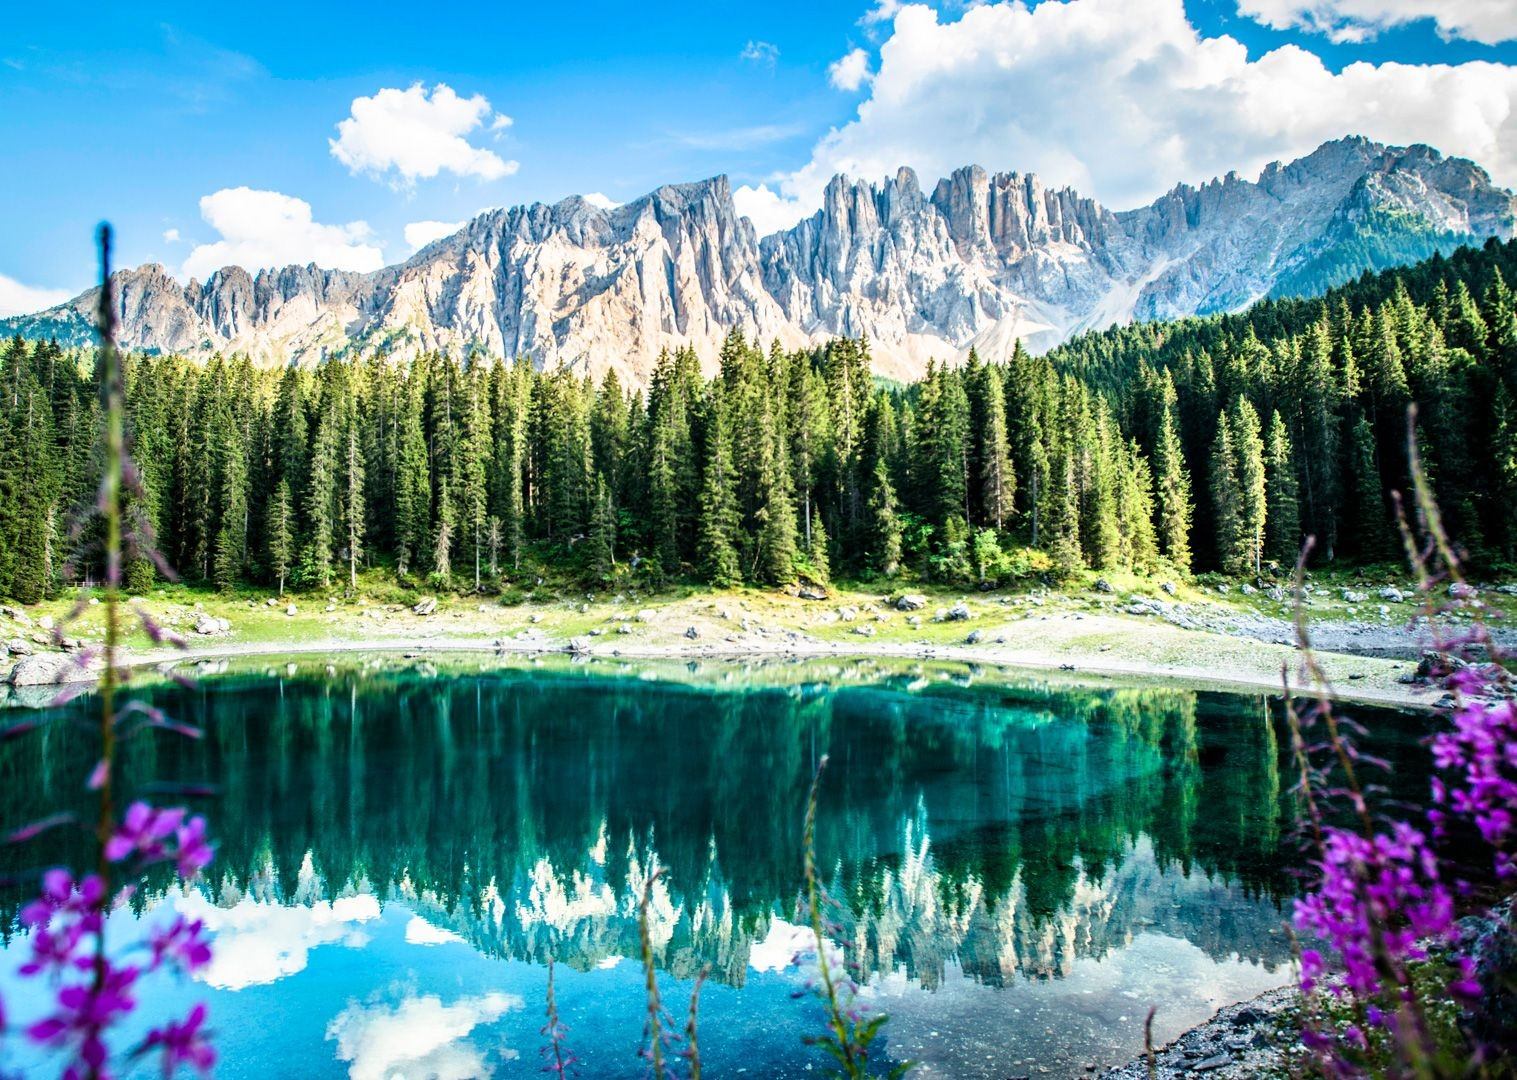 forests-lakes-and-mountains-of-italy-on-road-cycling-holiday.jpg - Italy - Dolomiti Discoverer - Guided Road Cycling Holiday - Road Cycling